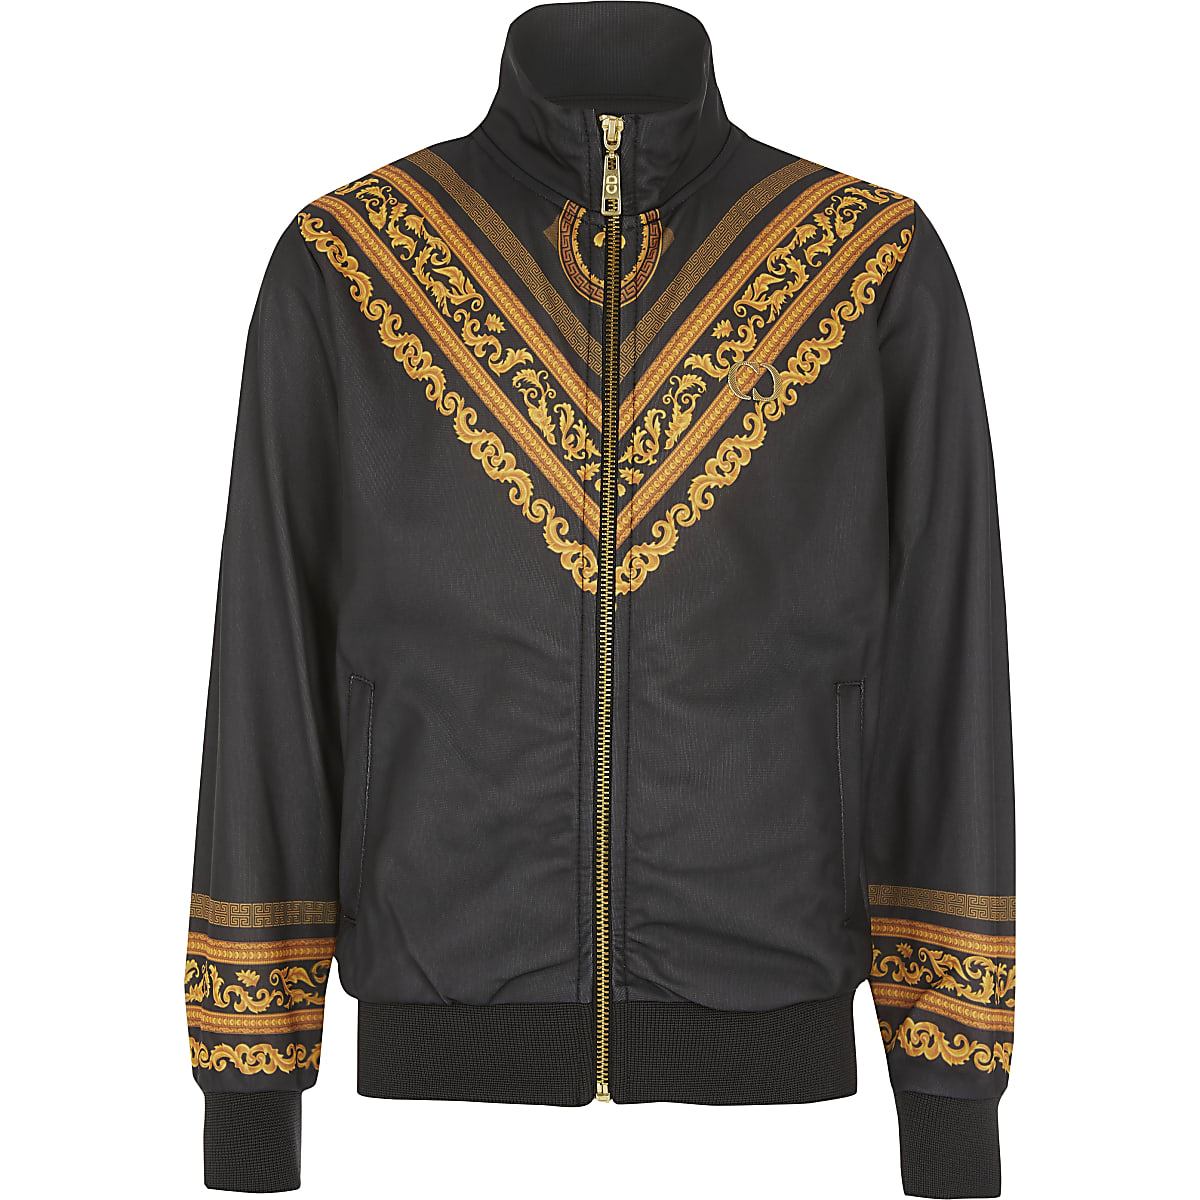 Boys Criminal Damage baroque windbreaker